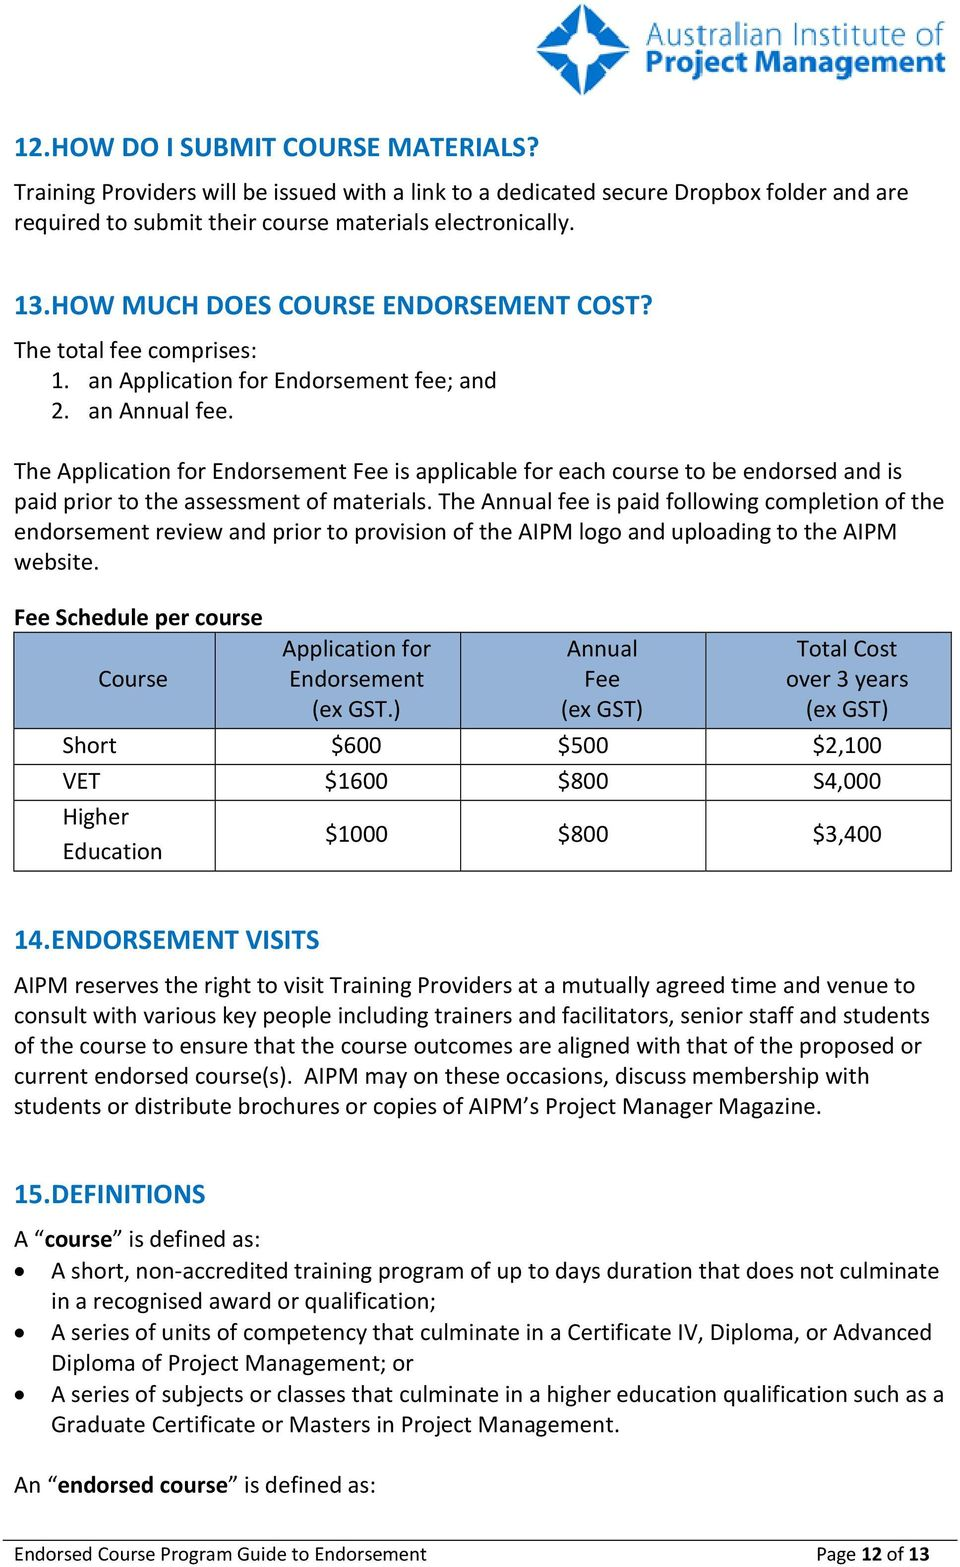 The Application for Endorsement Fee is applicable for each course to be endorsed and is paid prior to the assessment of materials.